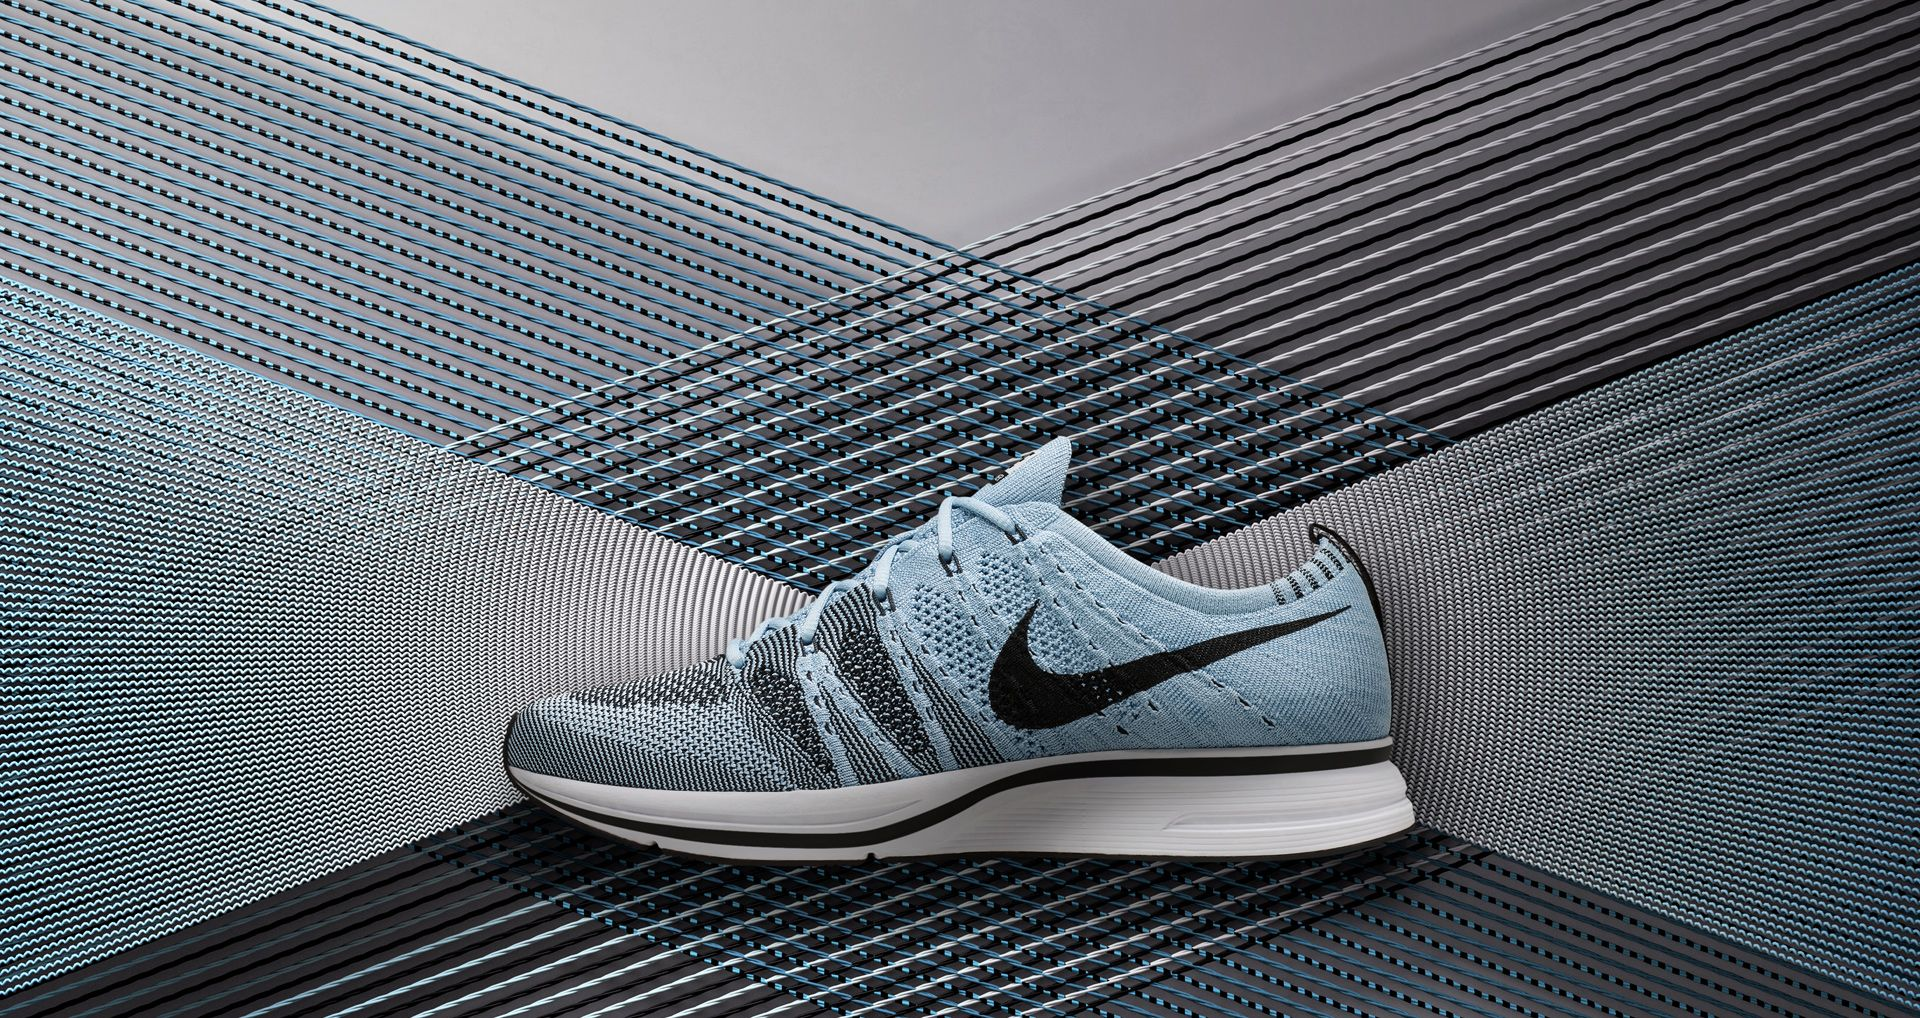 e546ce13f69e FLYKNIT TRAINER - Background. FLYKNIT TRAINER - Background Nike ...